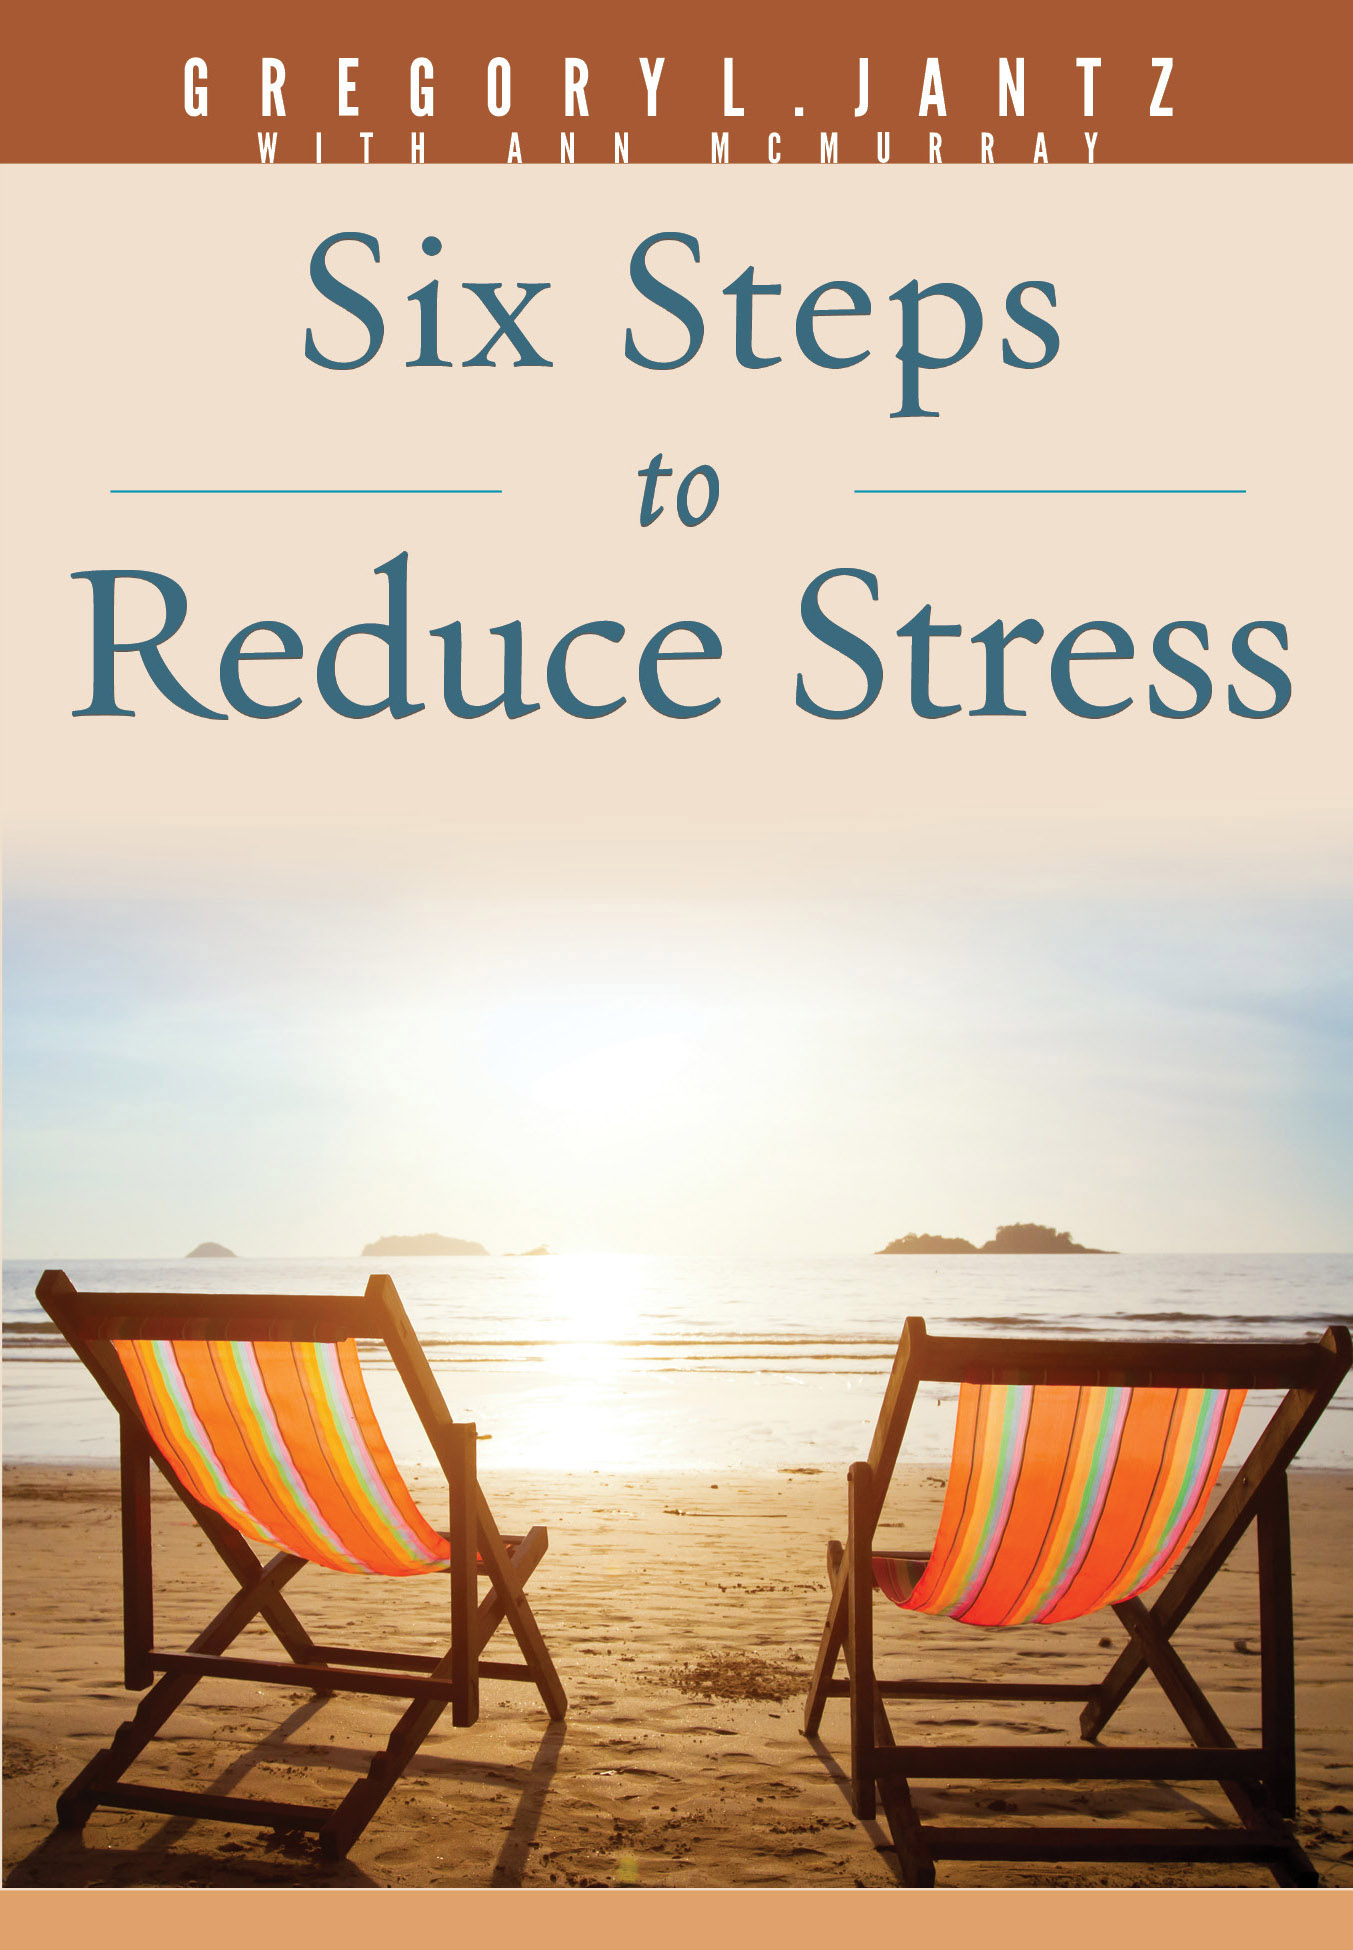 Six Steps to Reduce Stress Book Cover. Dr Gregory Jantz